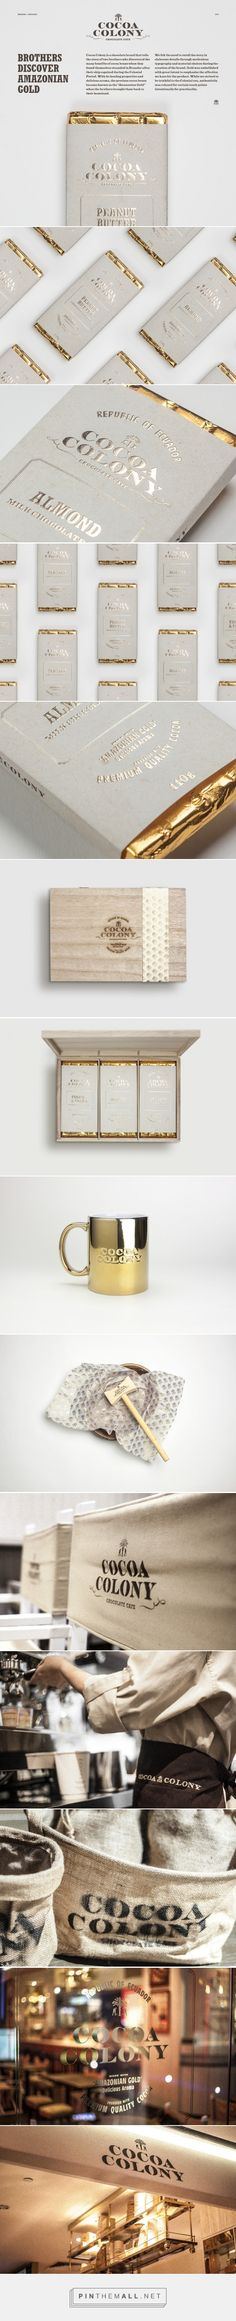 Great branding with real colonial feel. Reminds me a bit of Whiskey //Cocoa Colony Chocolate packaging designed by Bravo (Singapore)… Candy Packaging, Chocolate Packaging, Pretty Packaging, Food Packaging, Design Packaging, Coffee Packaging, Bottle Packaging, Identity Design, Logo Design